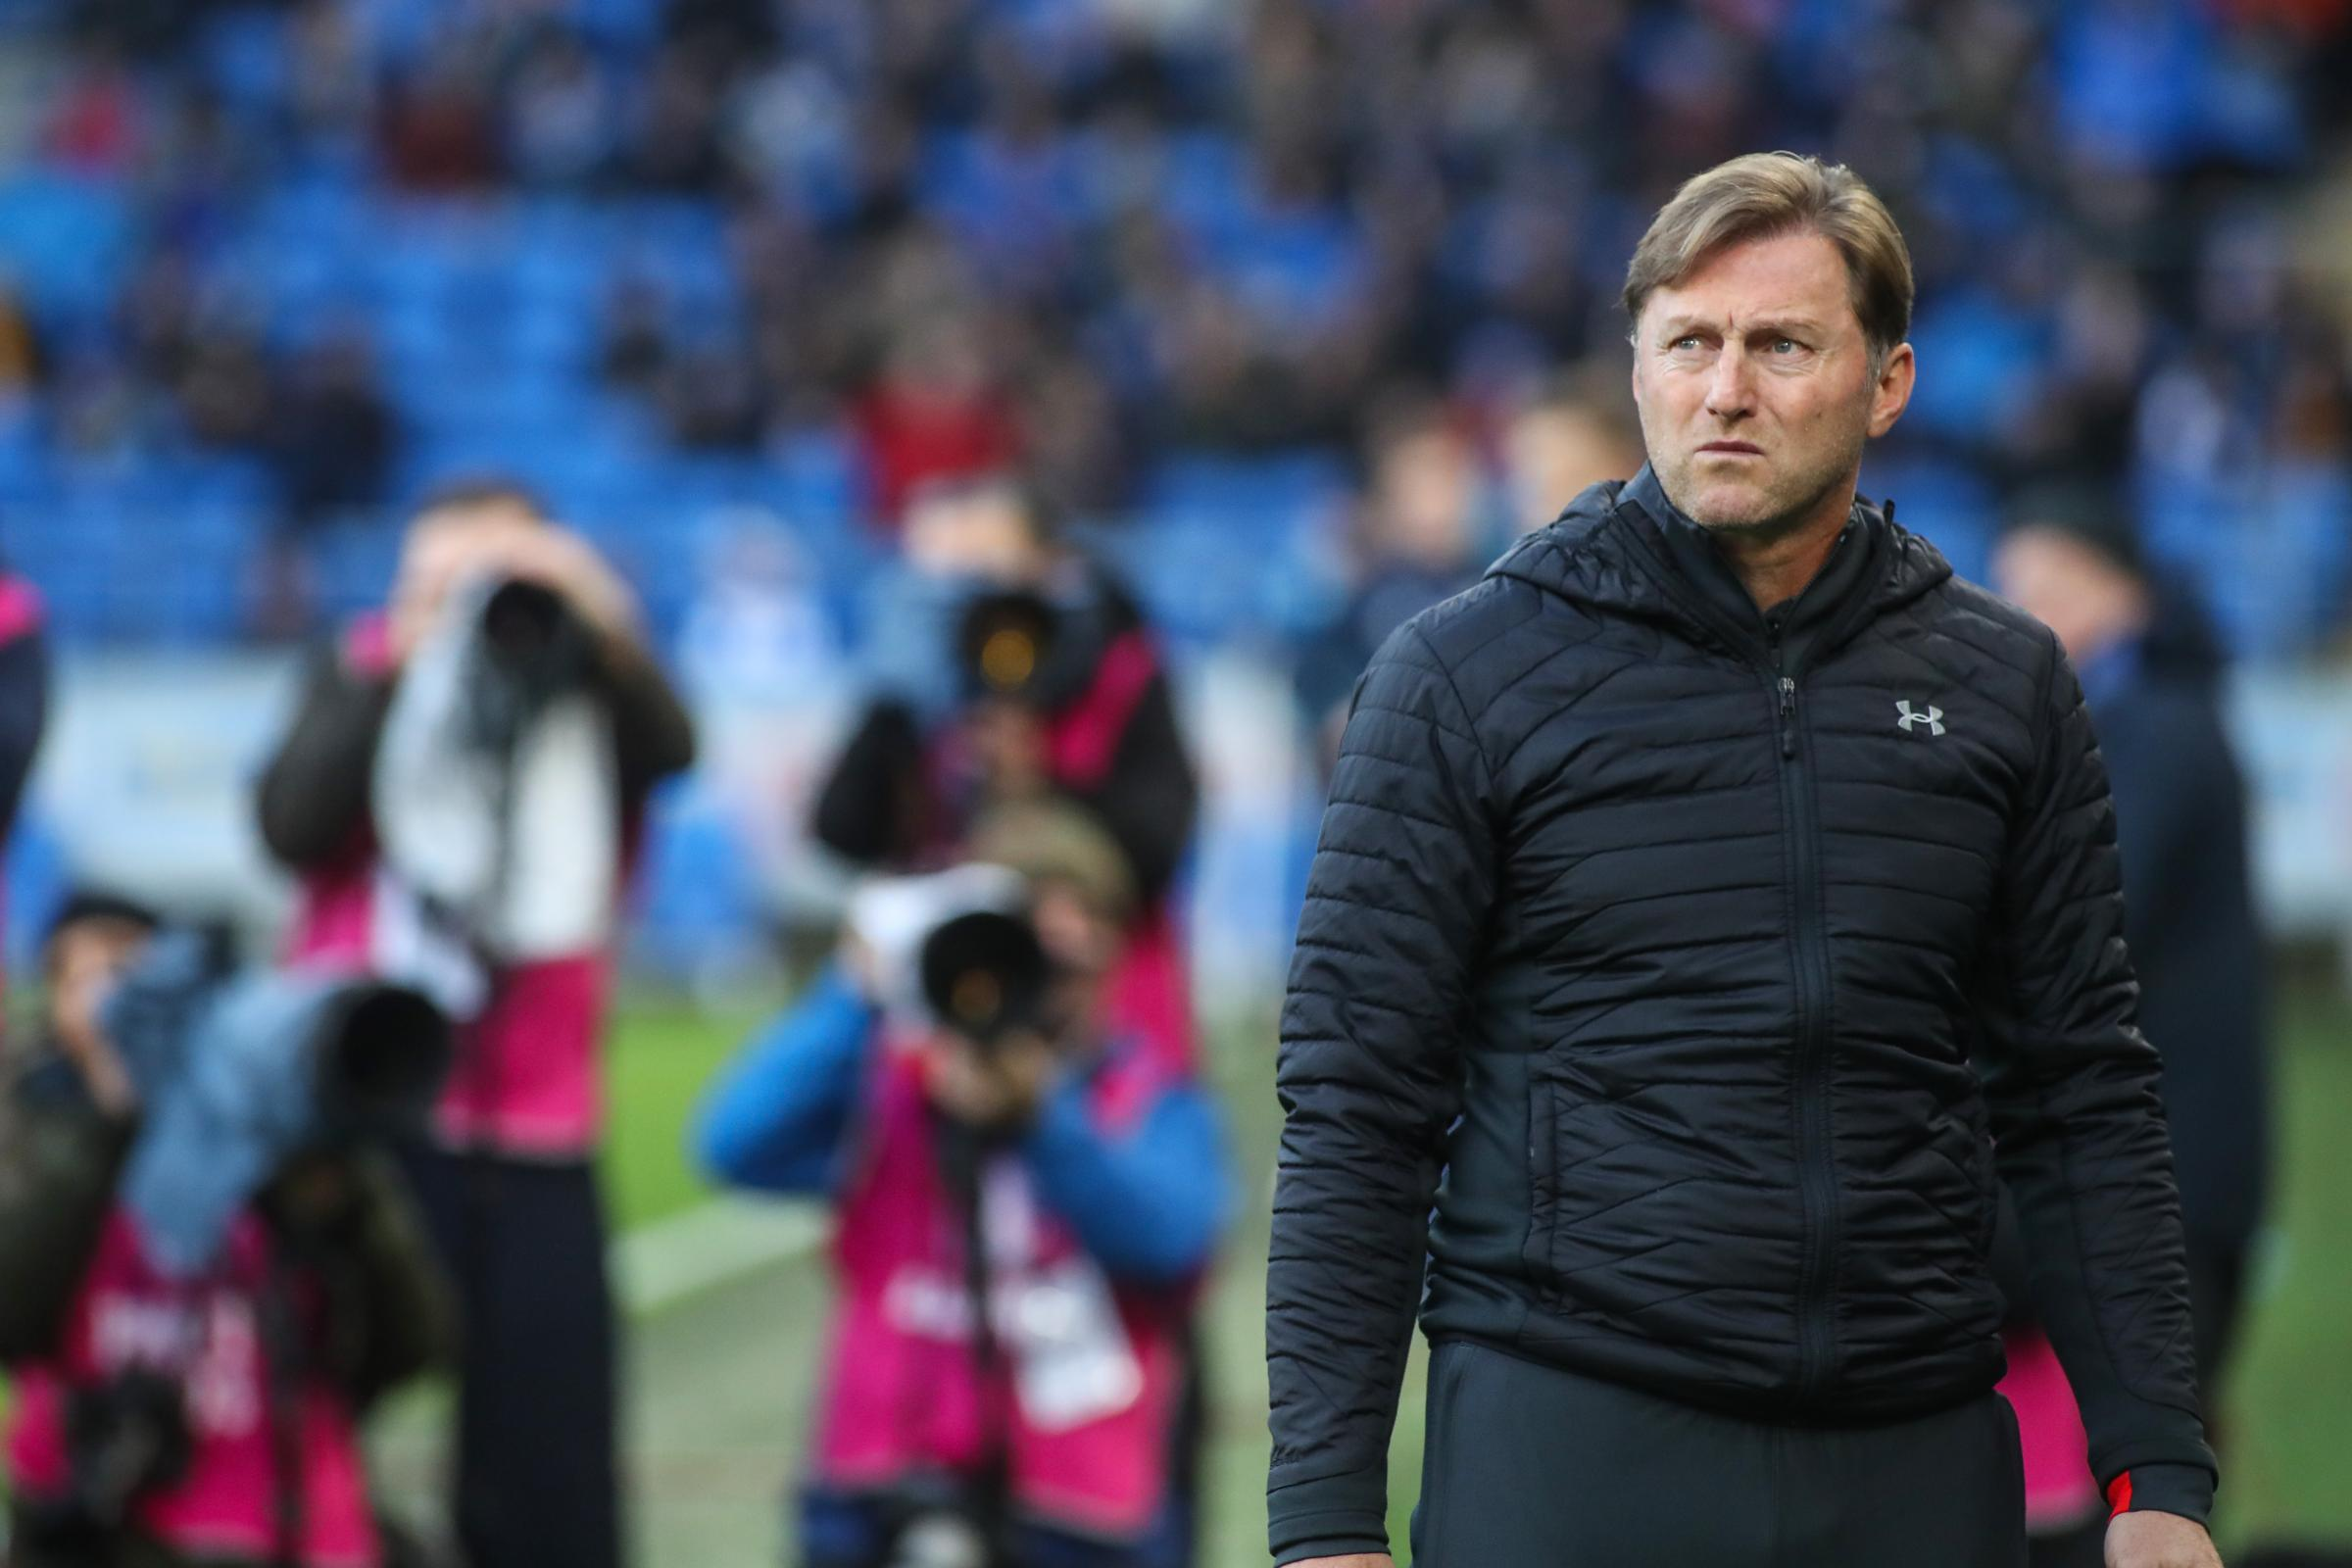 Hasenhuttl outlines a target for next season